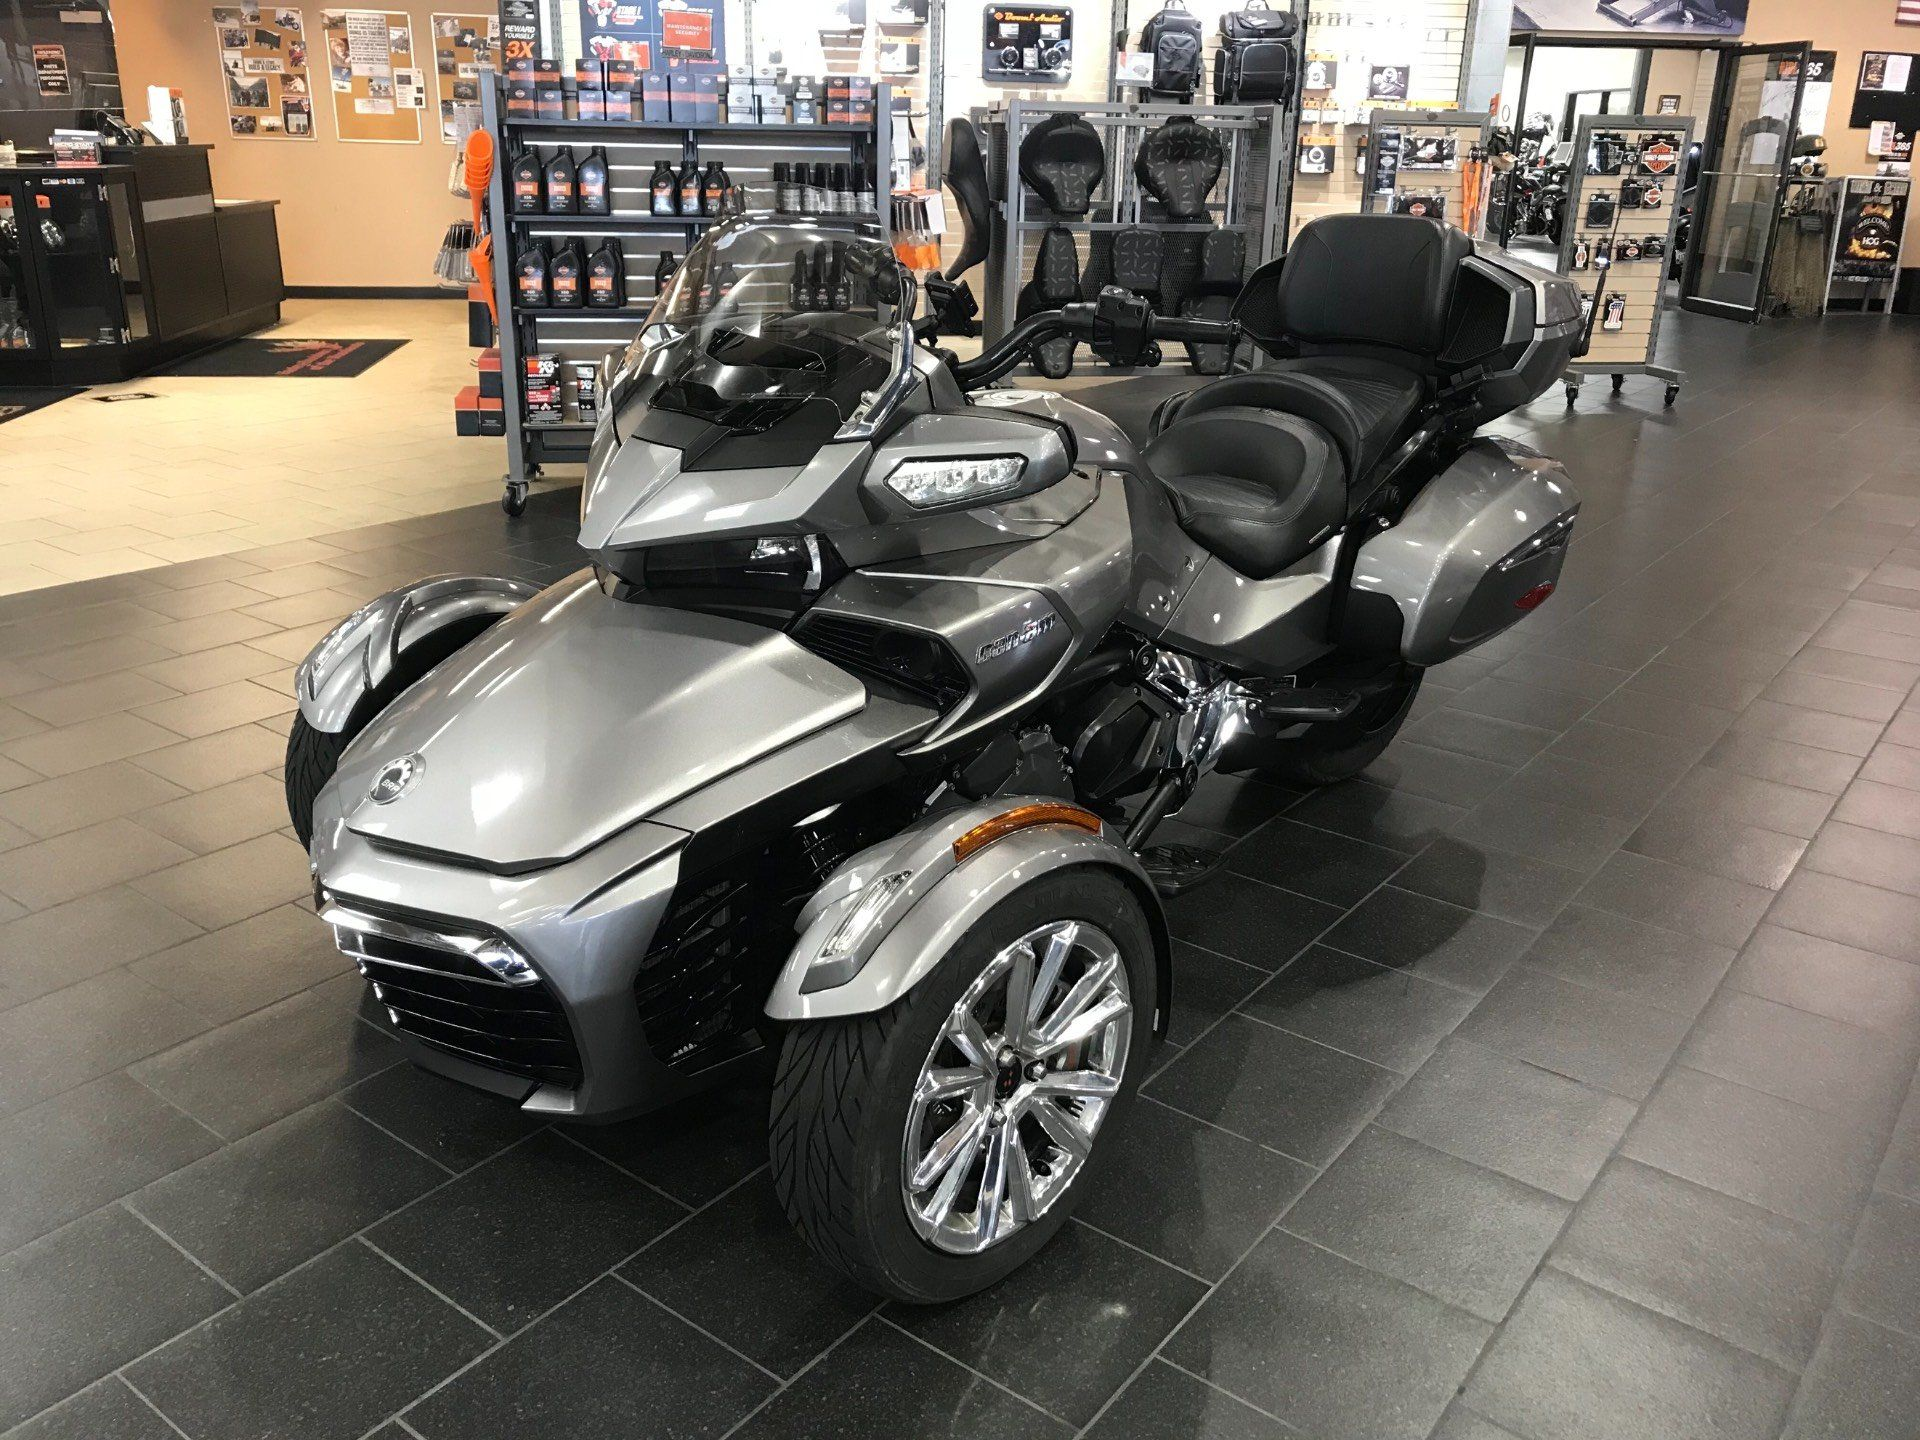 2017 Can-Am Spyder F3 Limited in The Woodlands, Texas - Photo 4